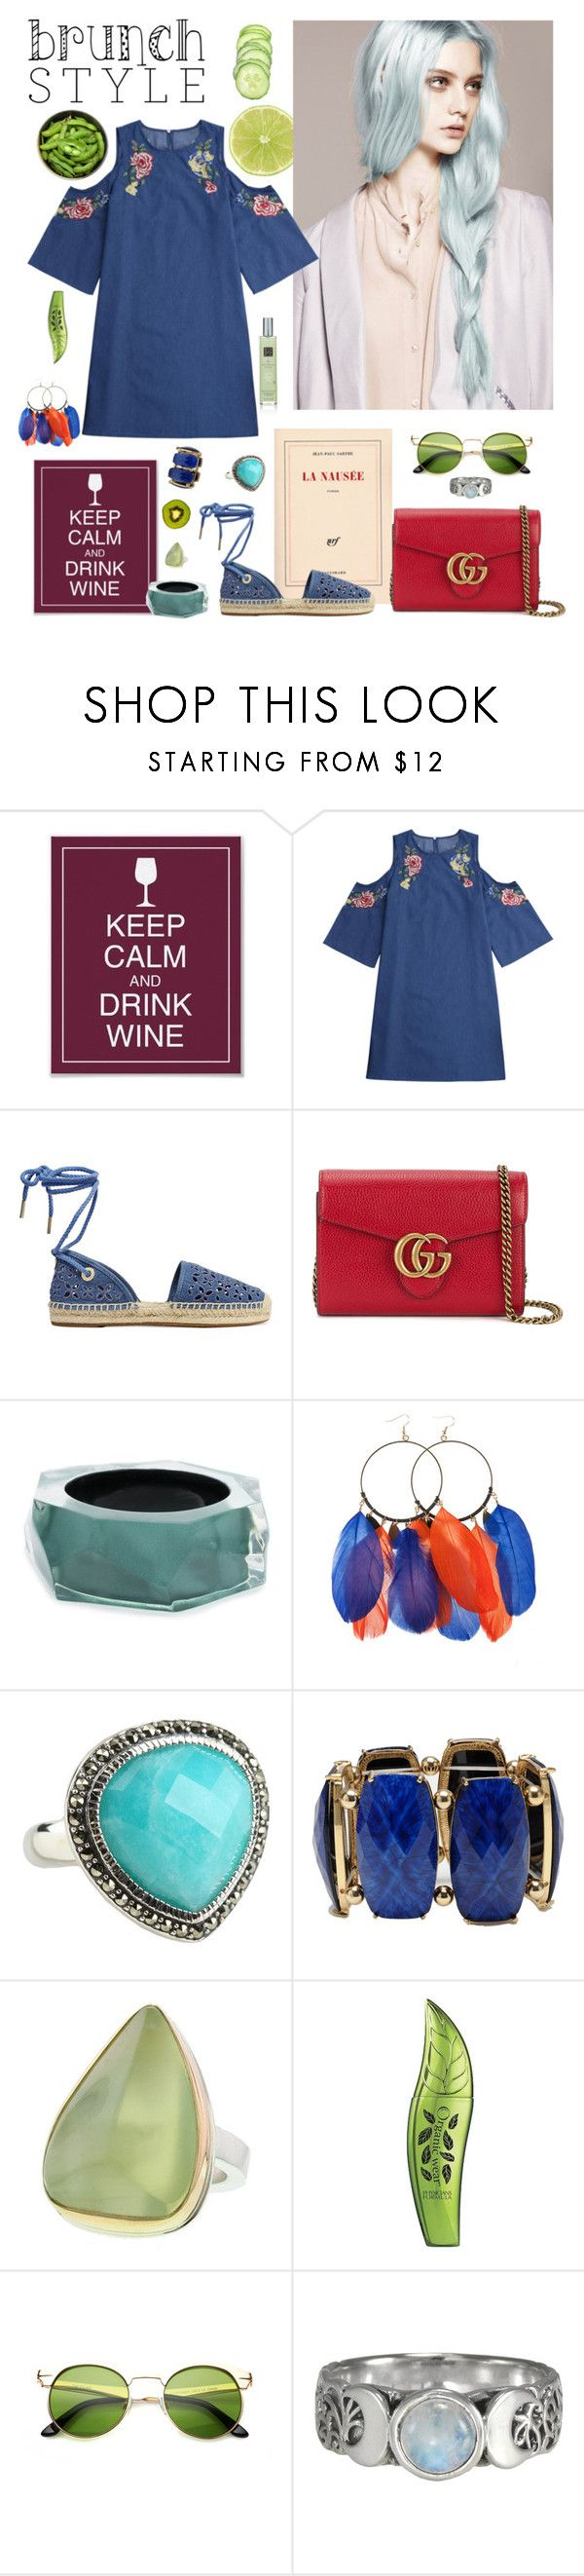 """brunchstyle"" by nieboskakara ❤ liked on Polyvore featuring Martha Stewart, MICHAEL Michael Kors, Gucci, Alexis Bittar, Friis & Company, Judith Jack, Amrita Singh, Jamie Joseph, Physicians Formula and brunchgoals"